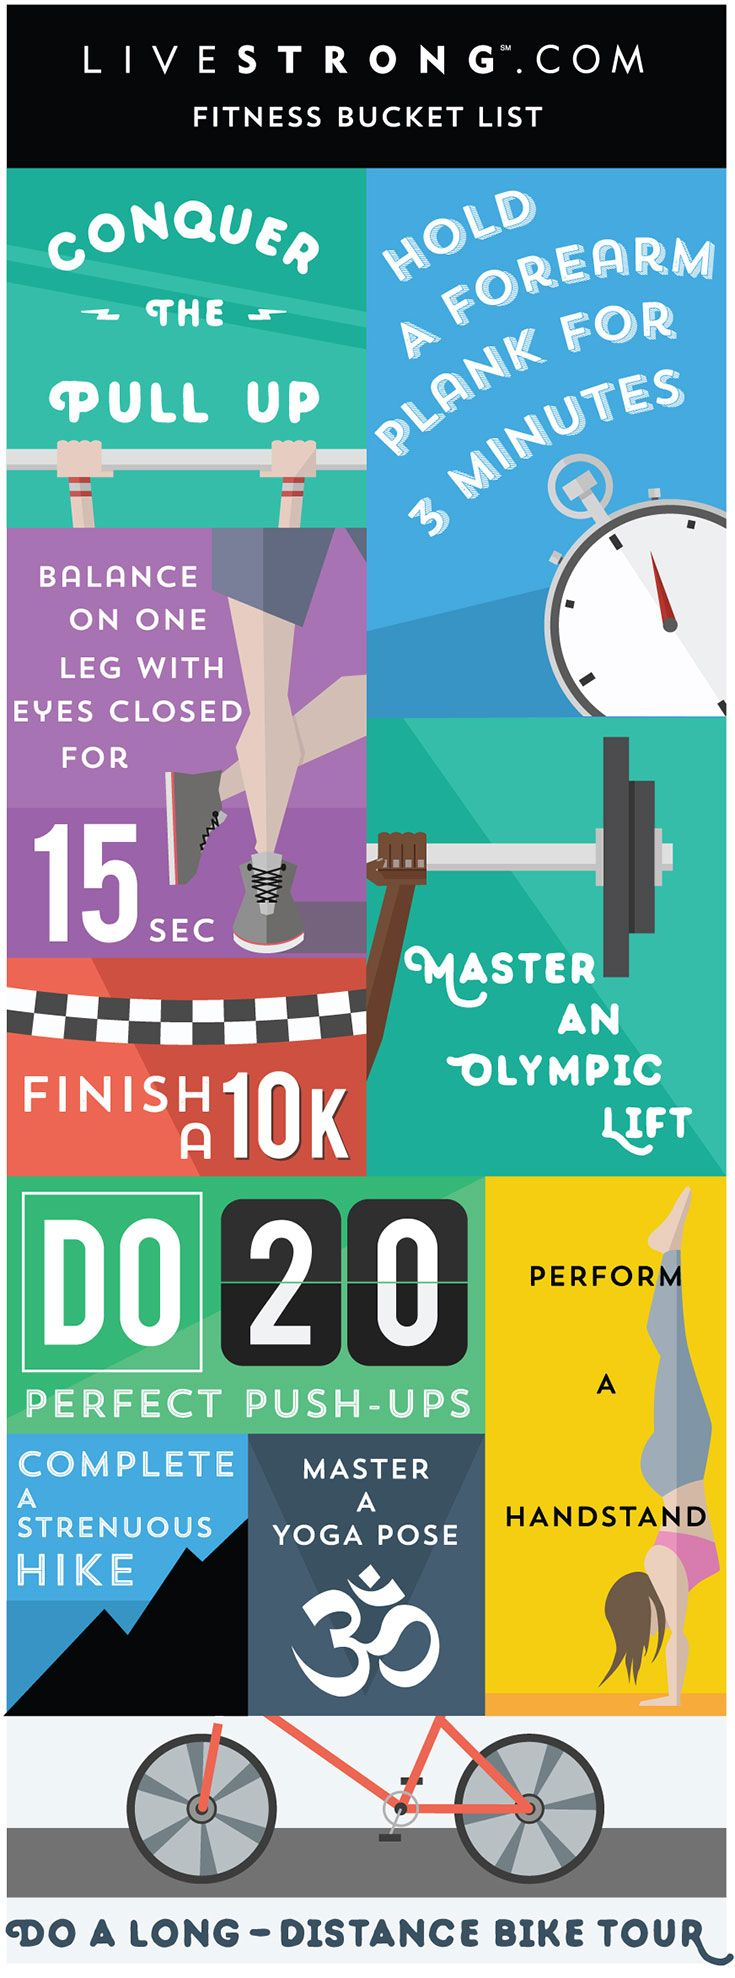 The ultimate fitness bucket list to fire you up!